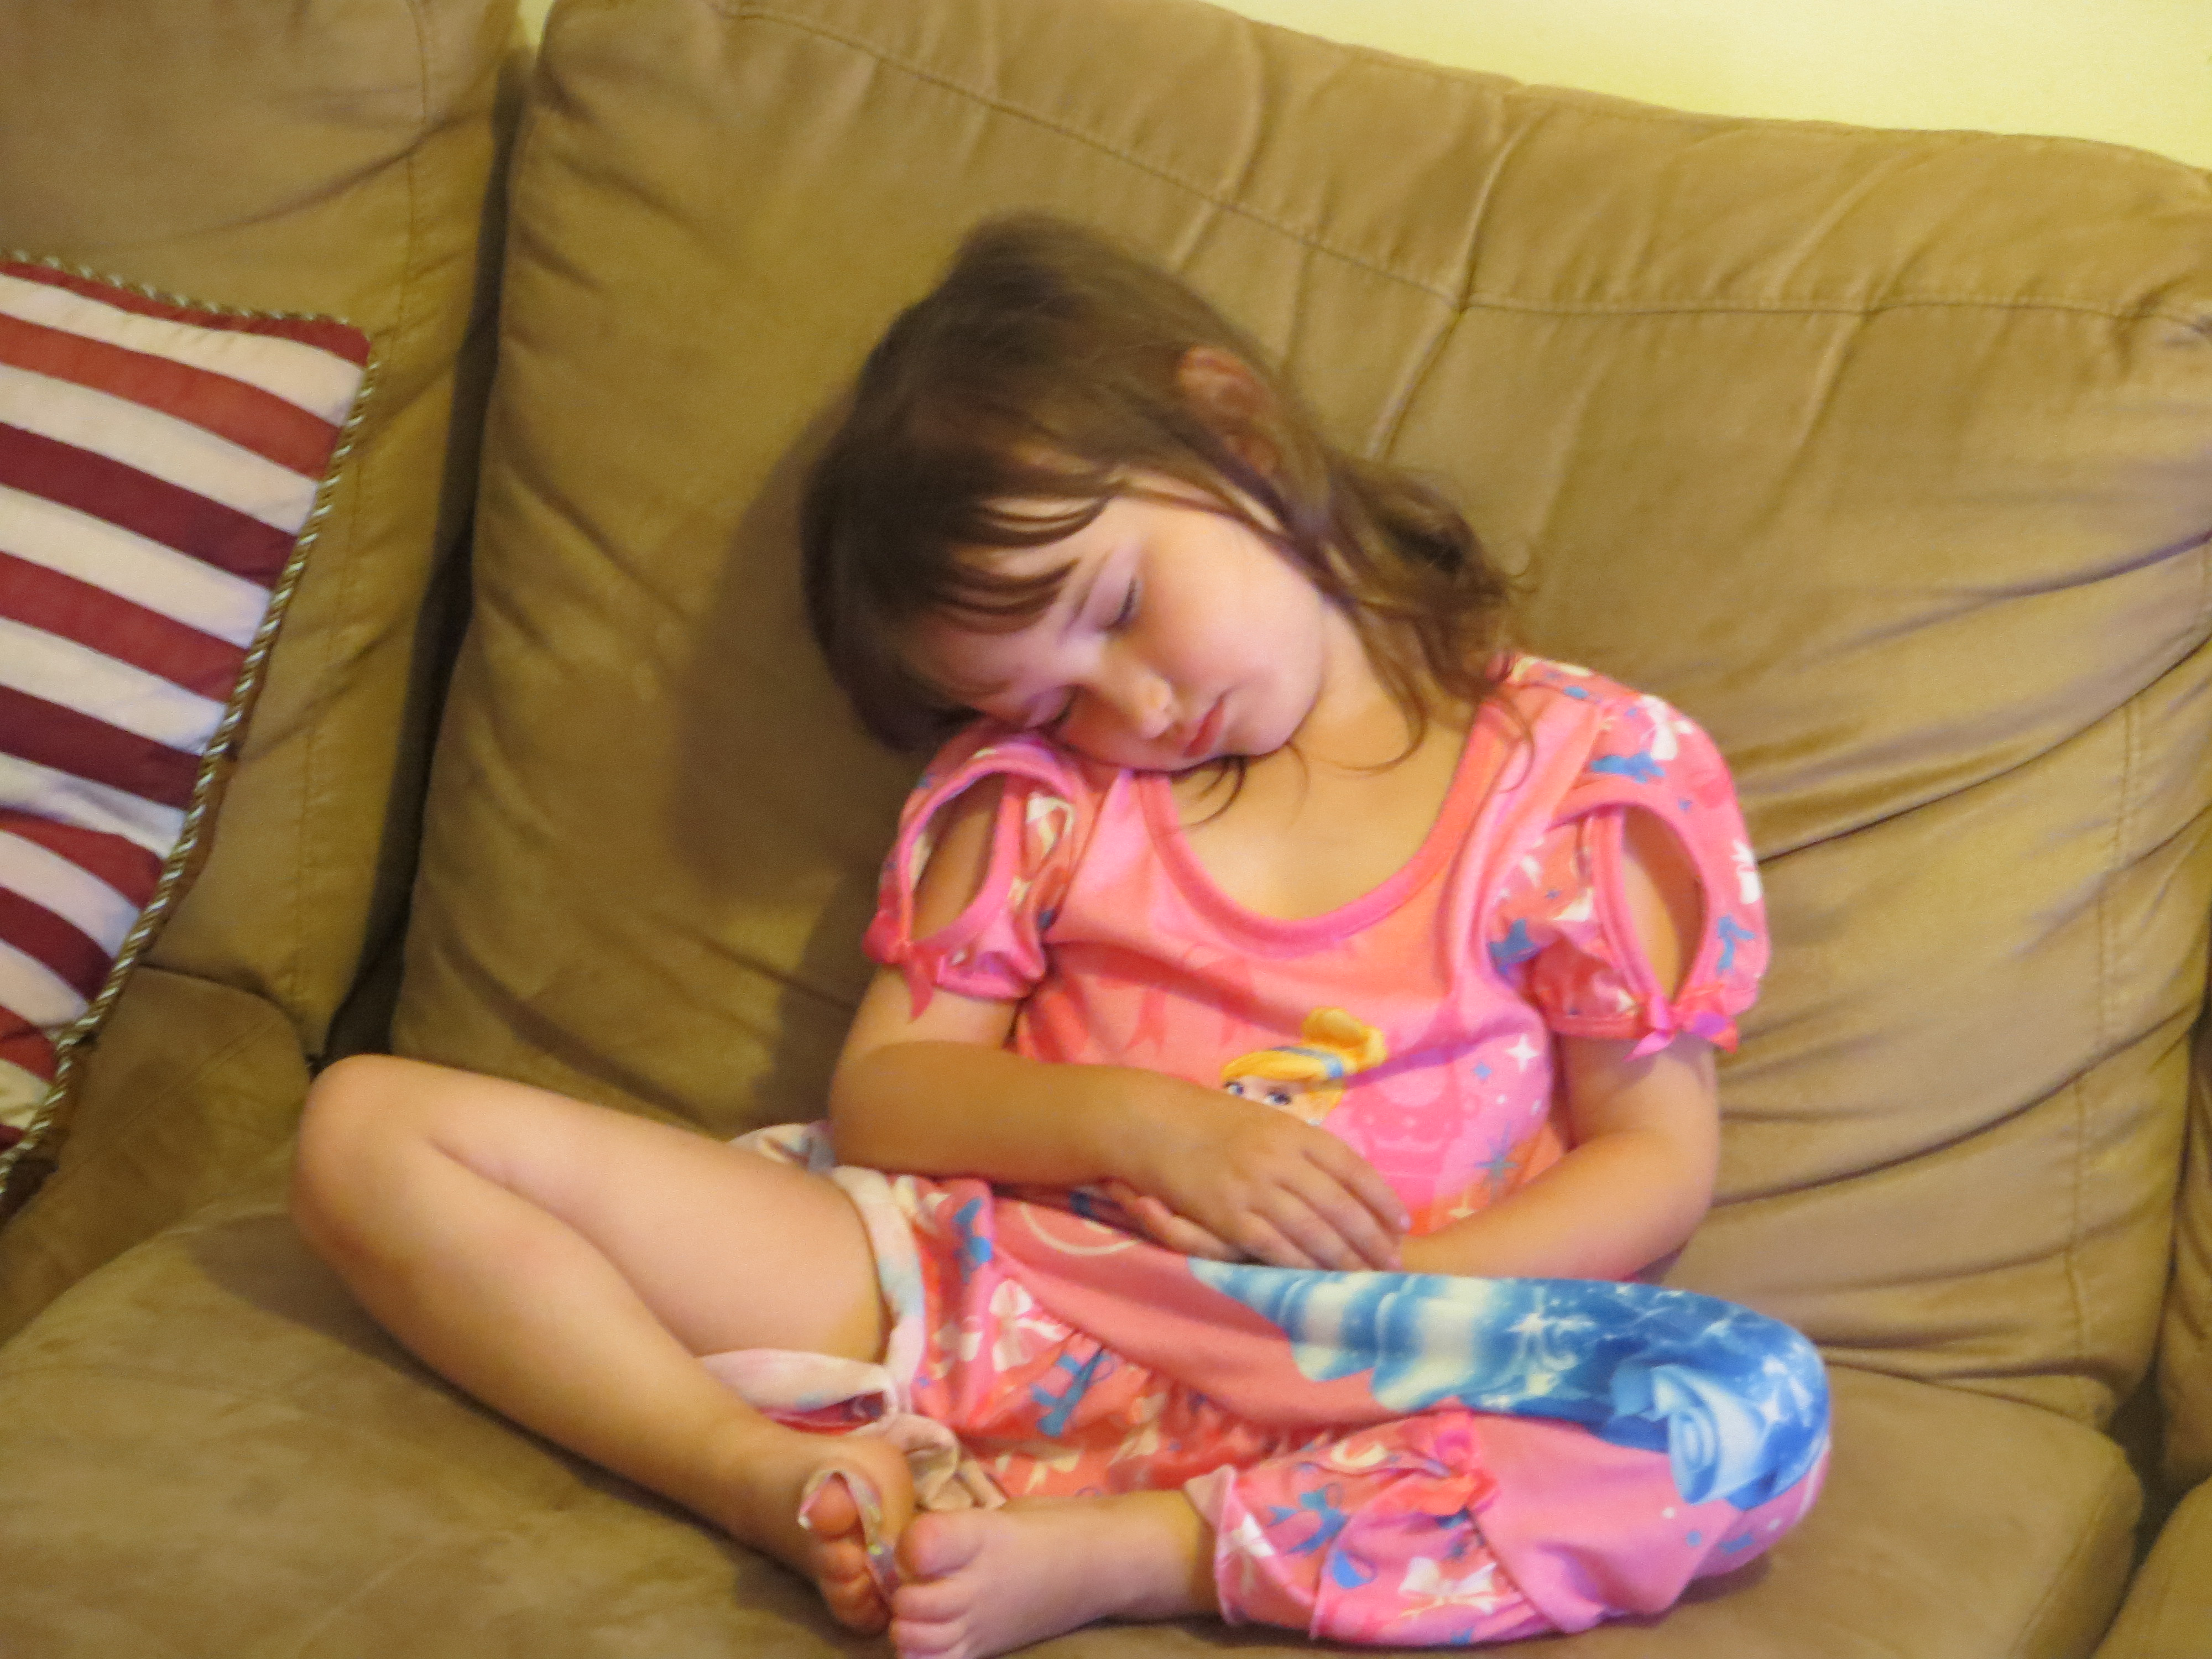 Emma at 2 or 3 sleeping on the couch